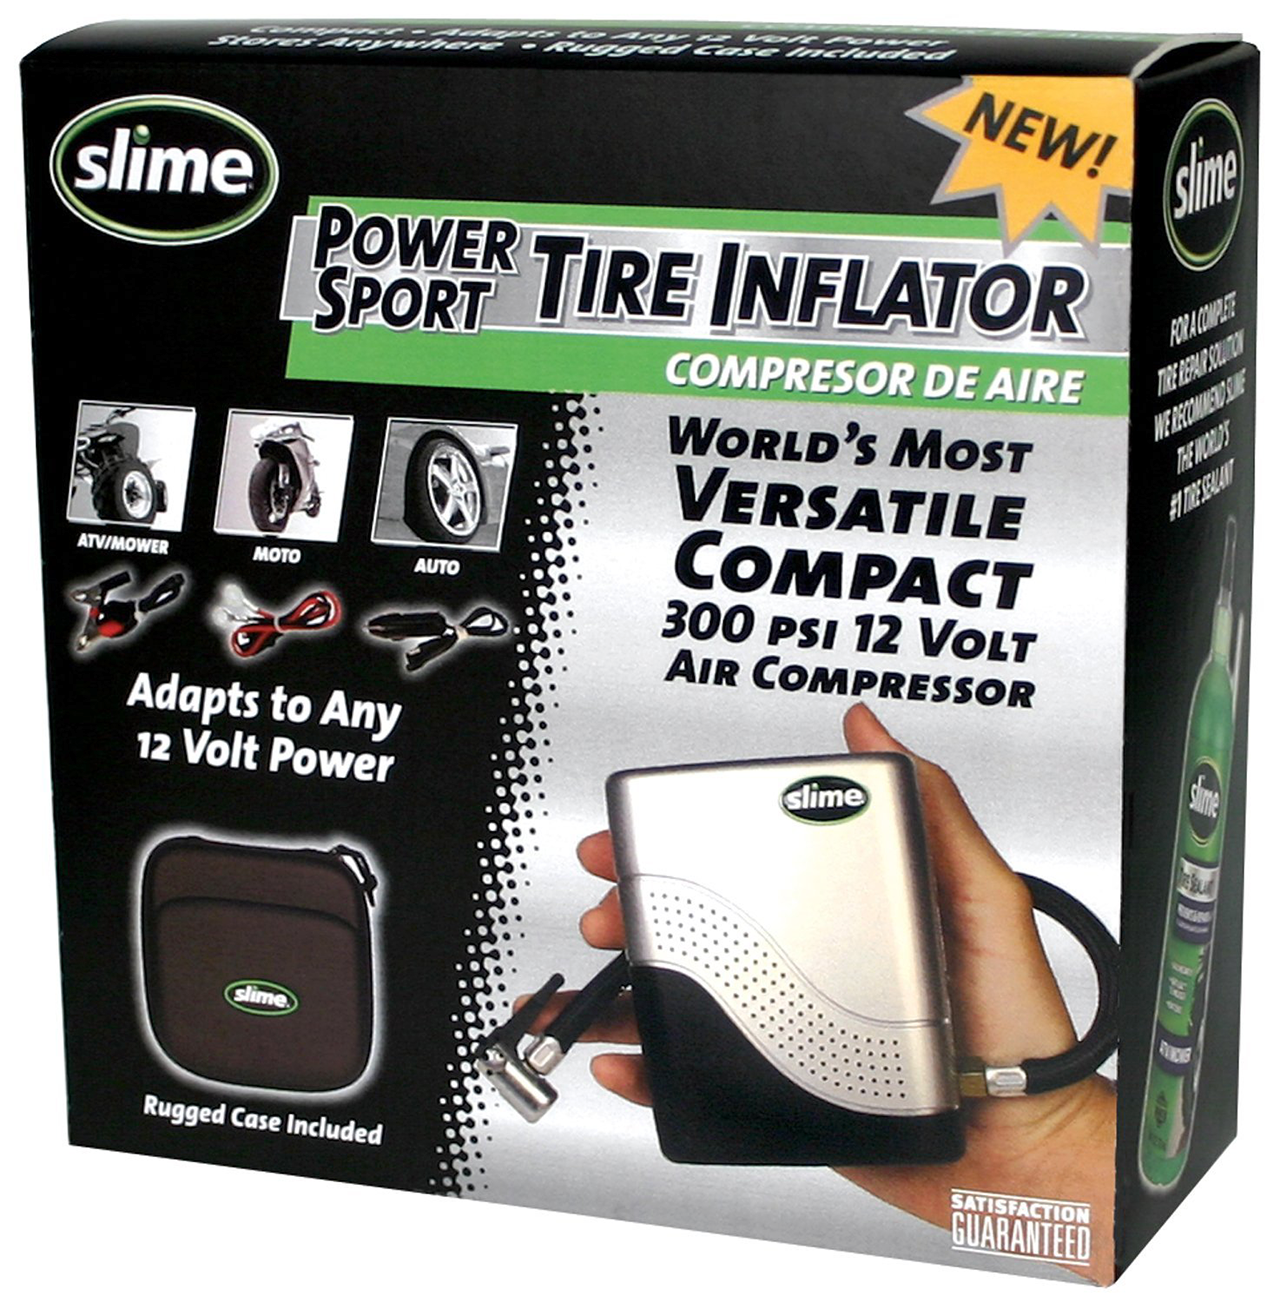 slime-portable-air-compressor